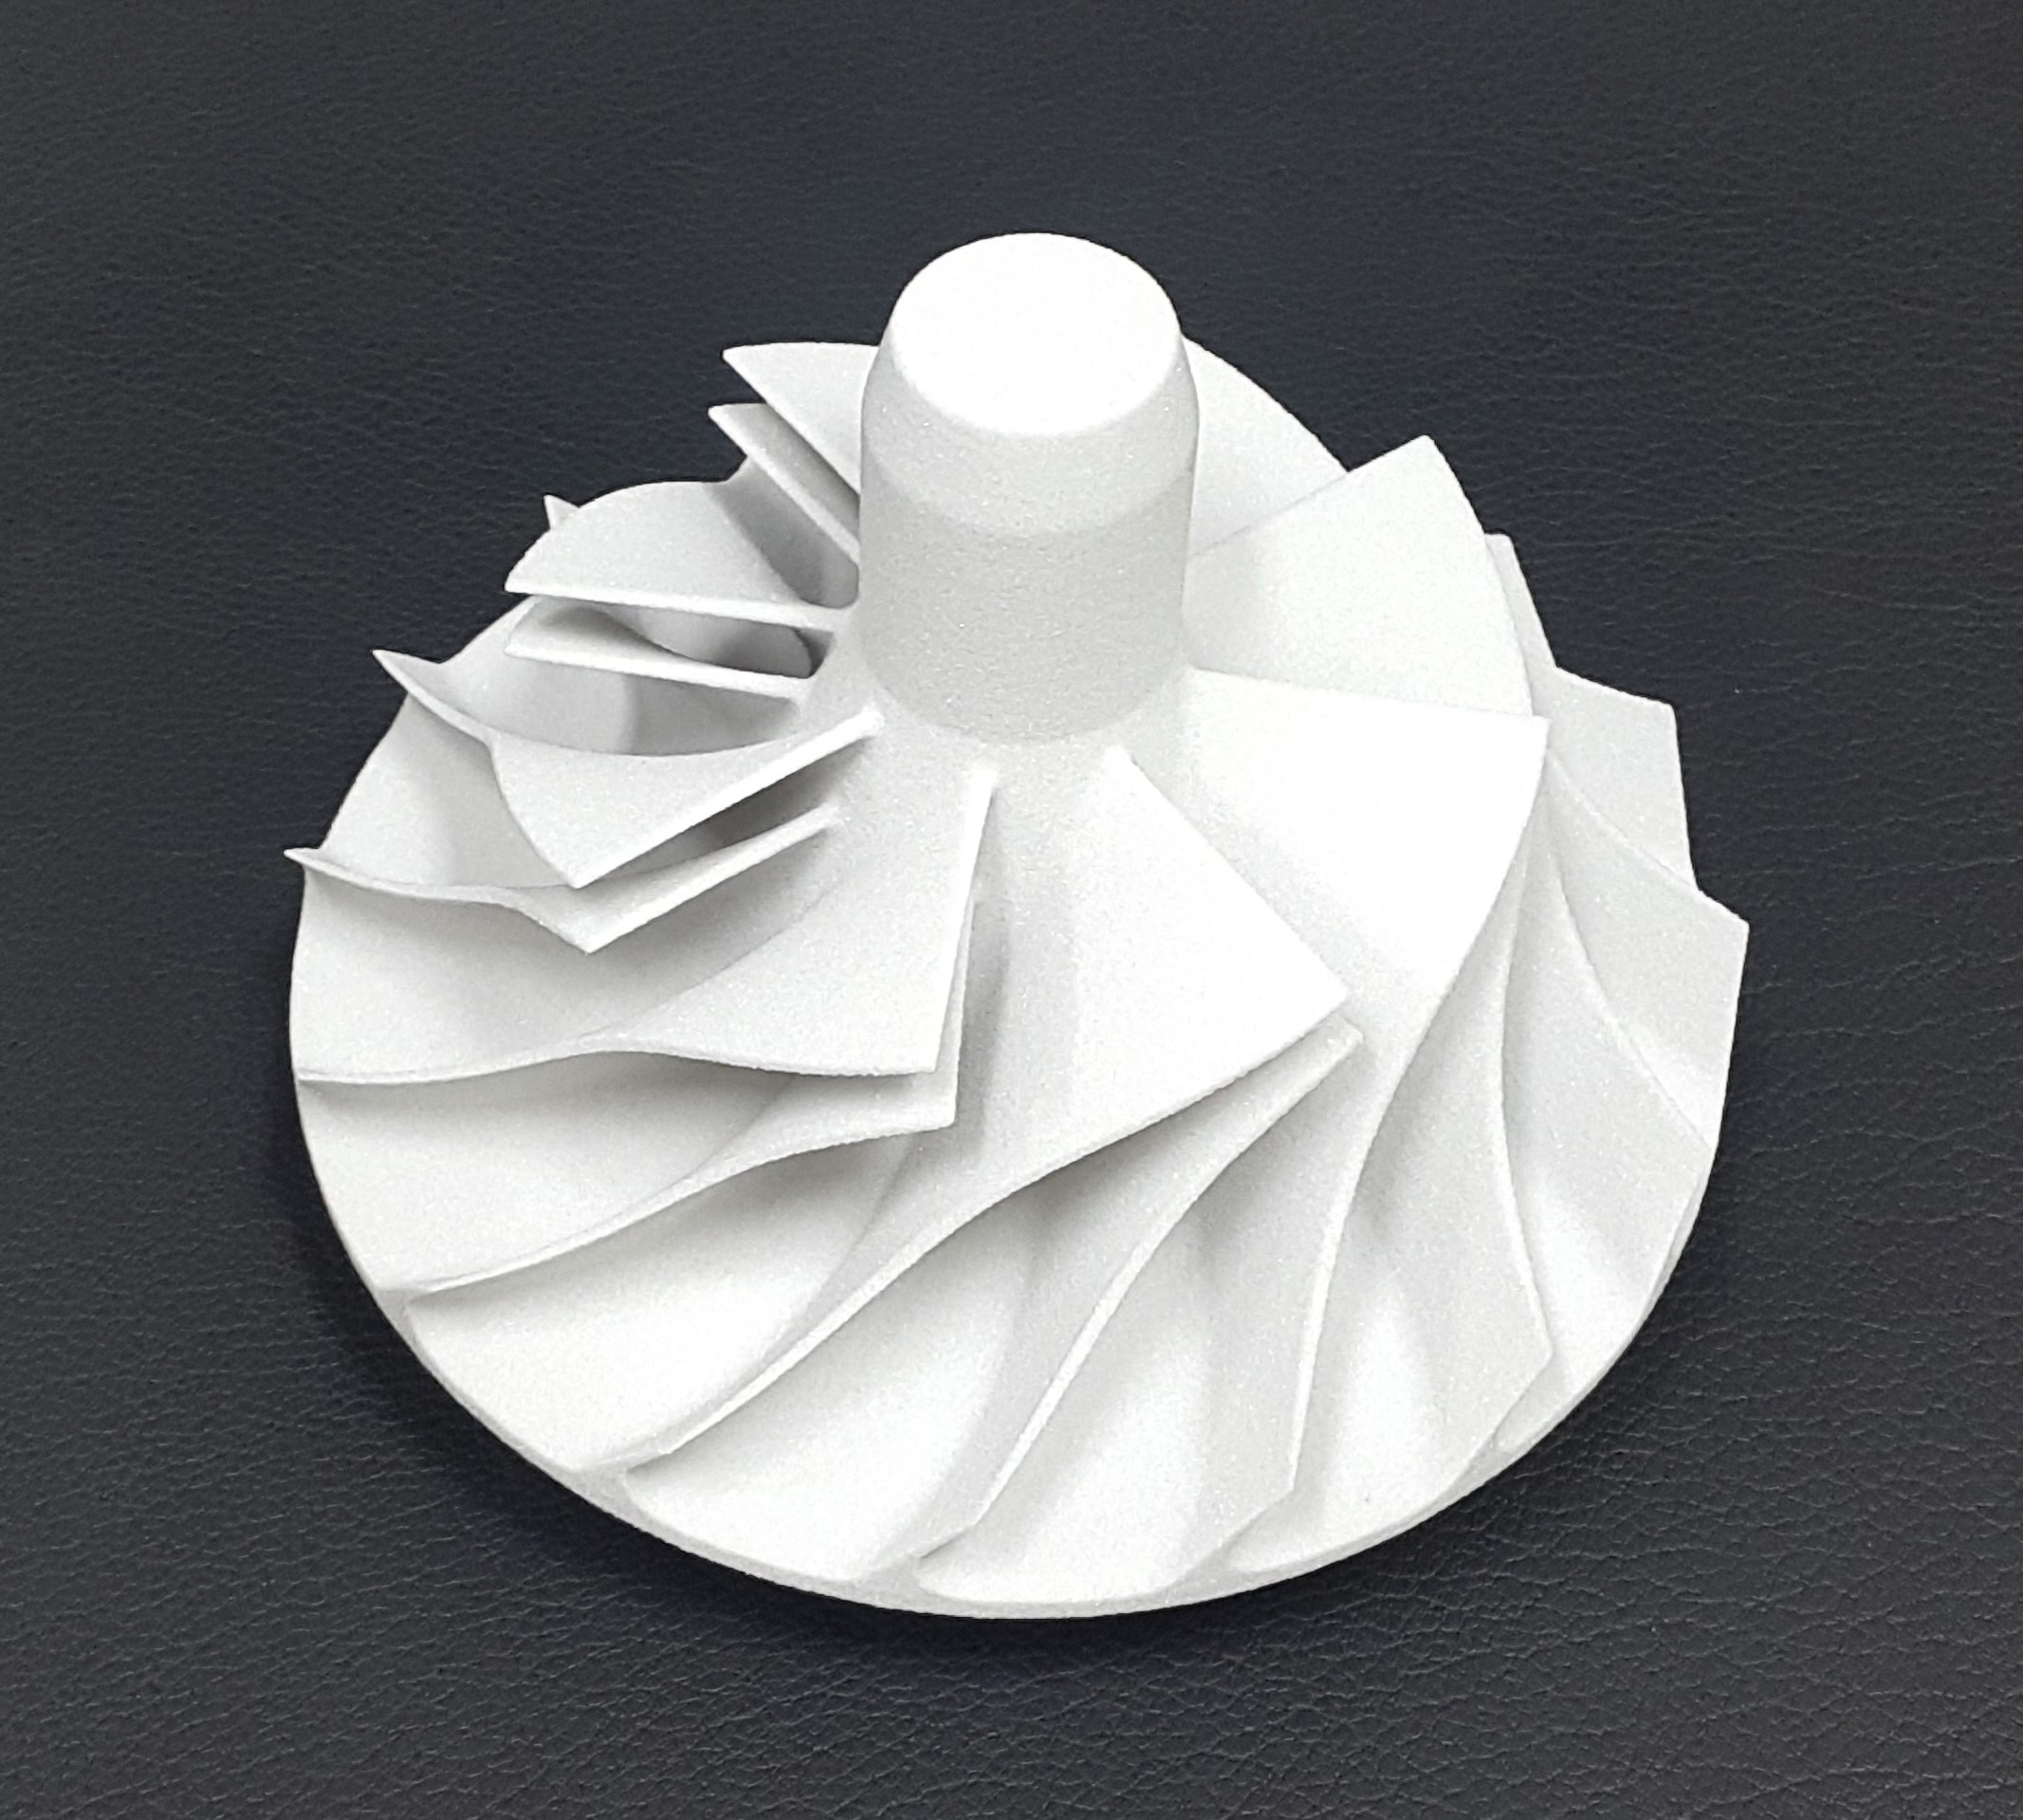 3D-printed pattern of a turbine wheel